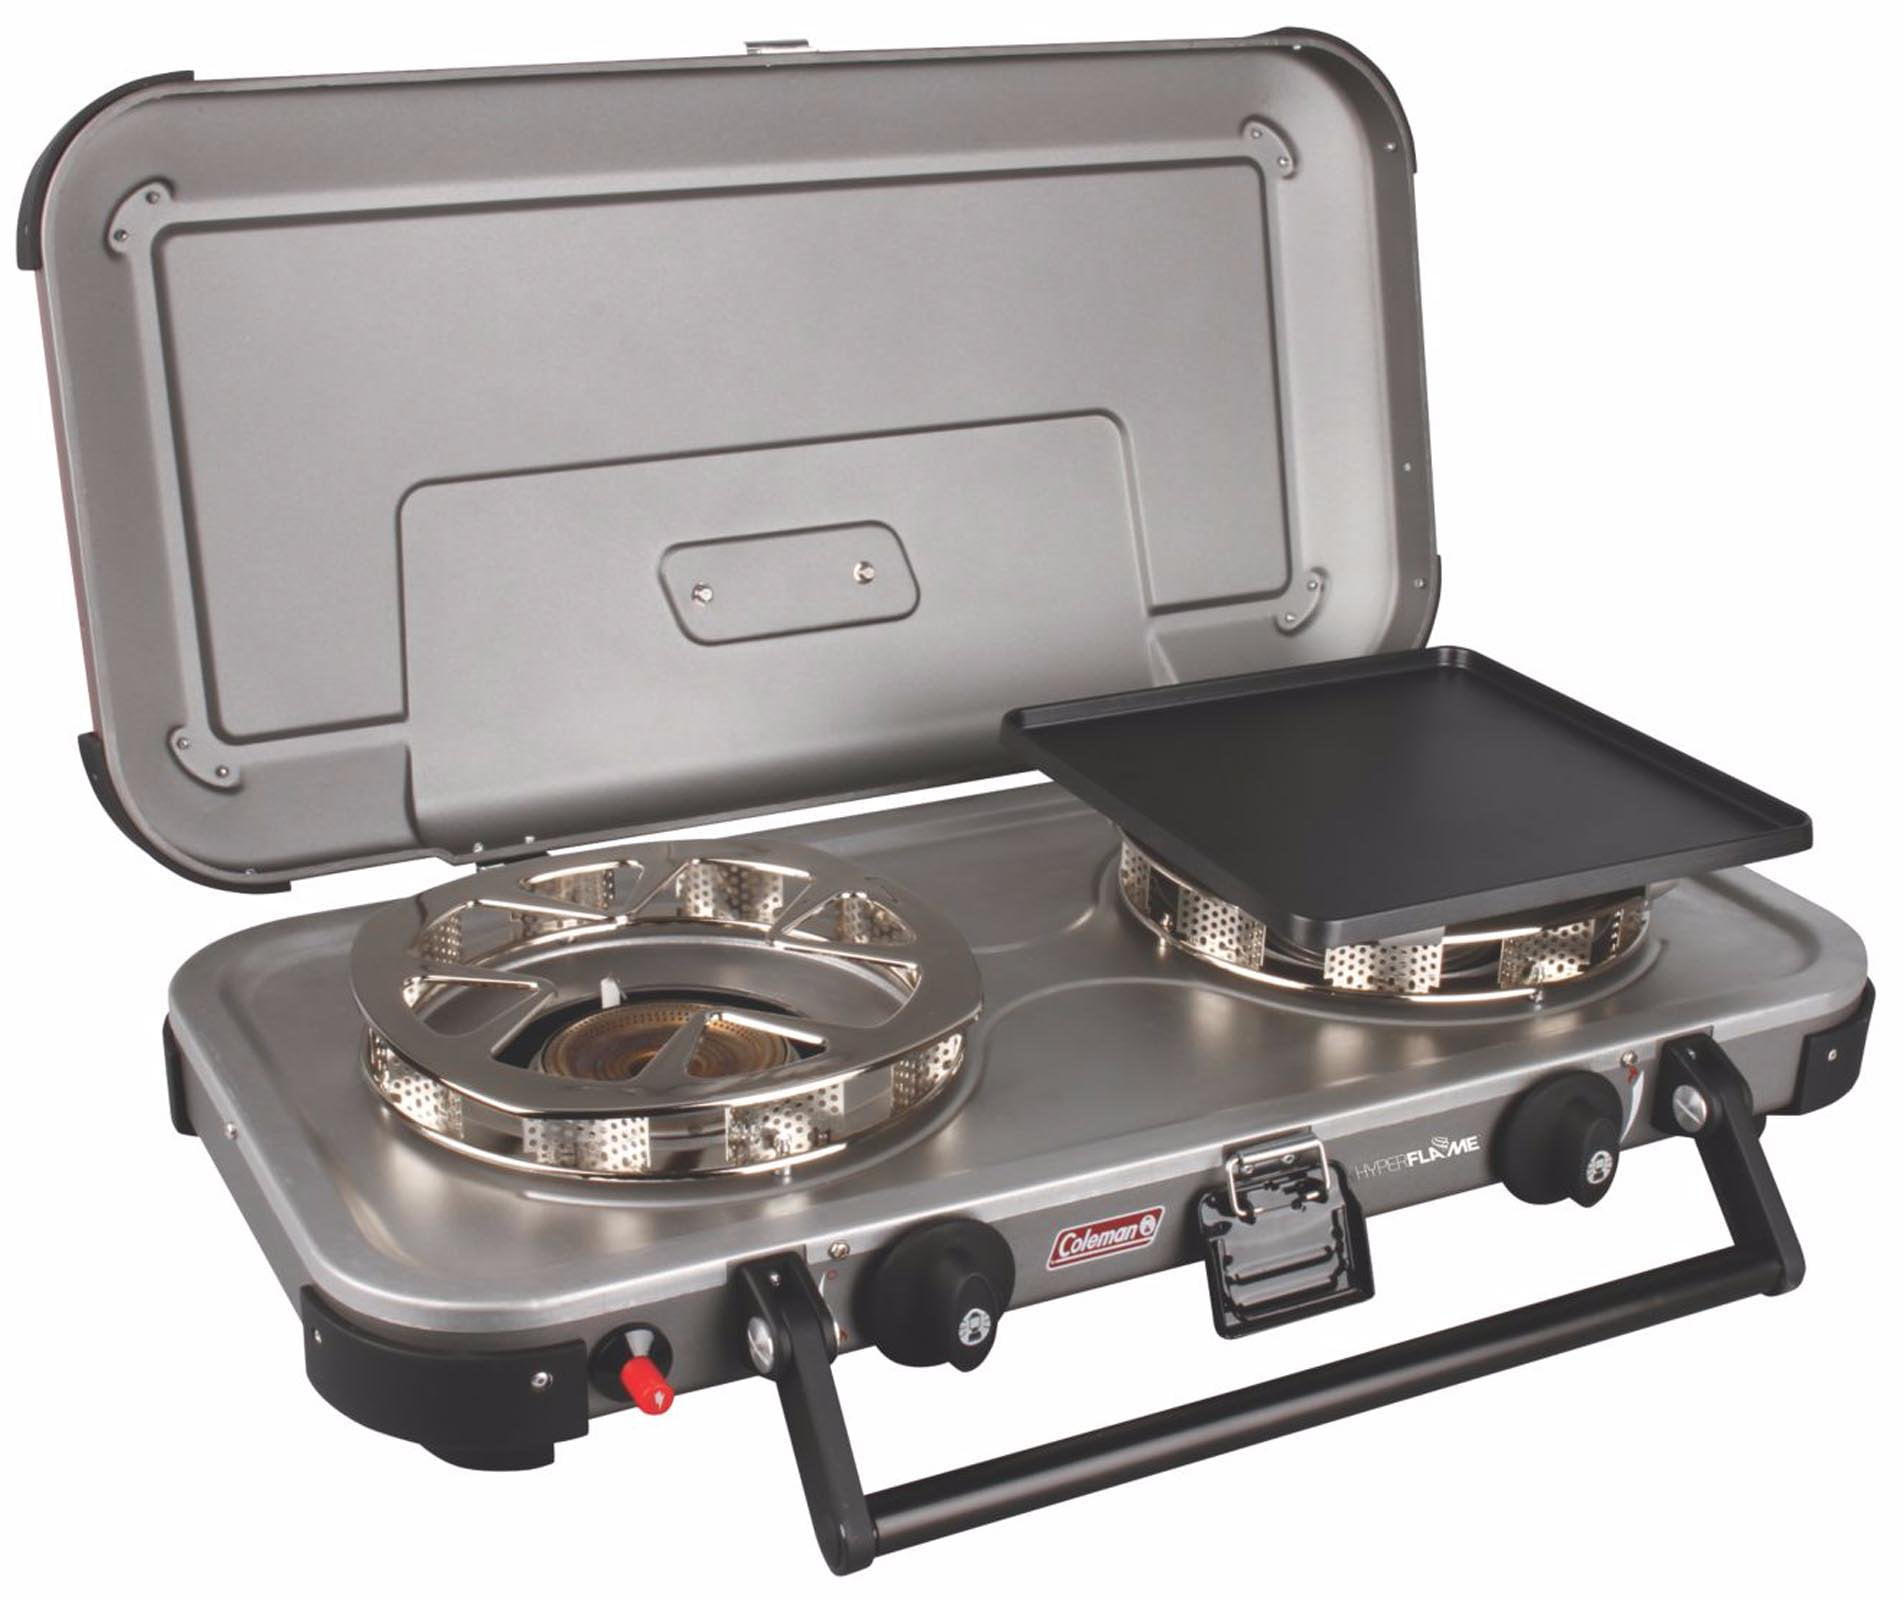 Coleman Gladiator Series FyreChampion 3-IN-1 Propane Stove, Grey, Steel by Propane Stoves